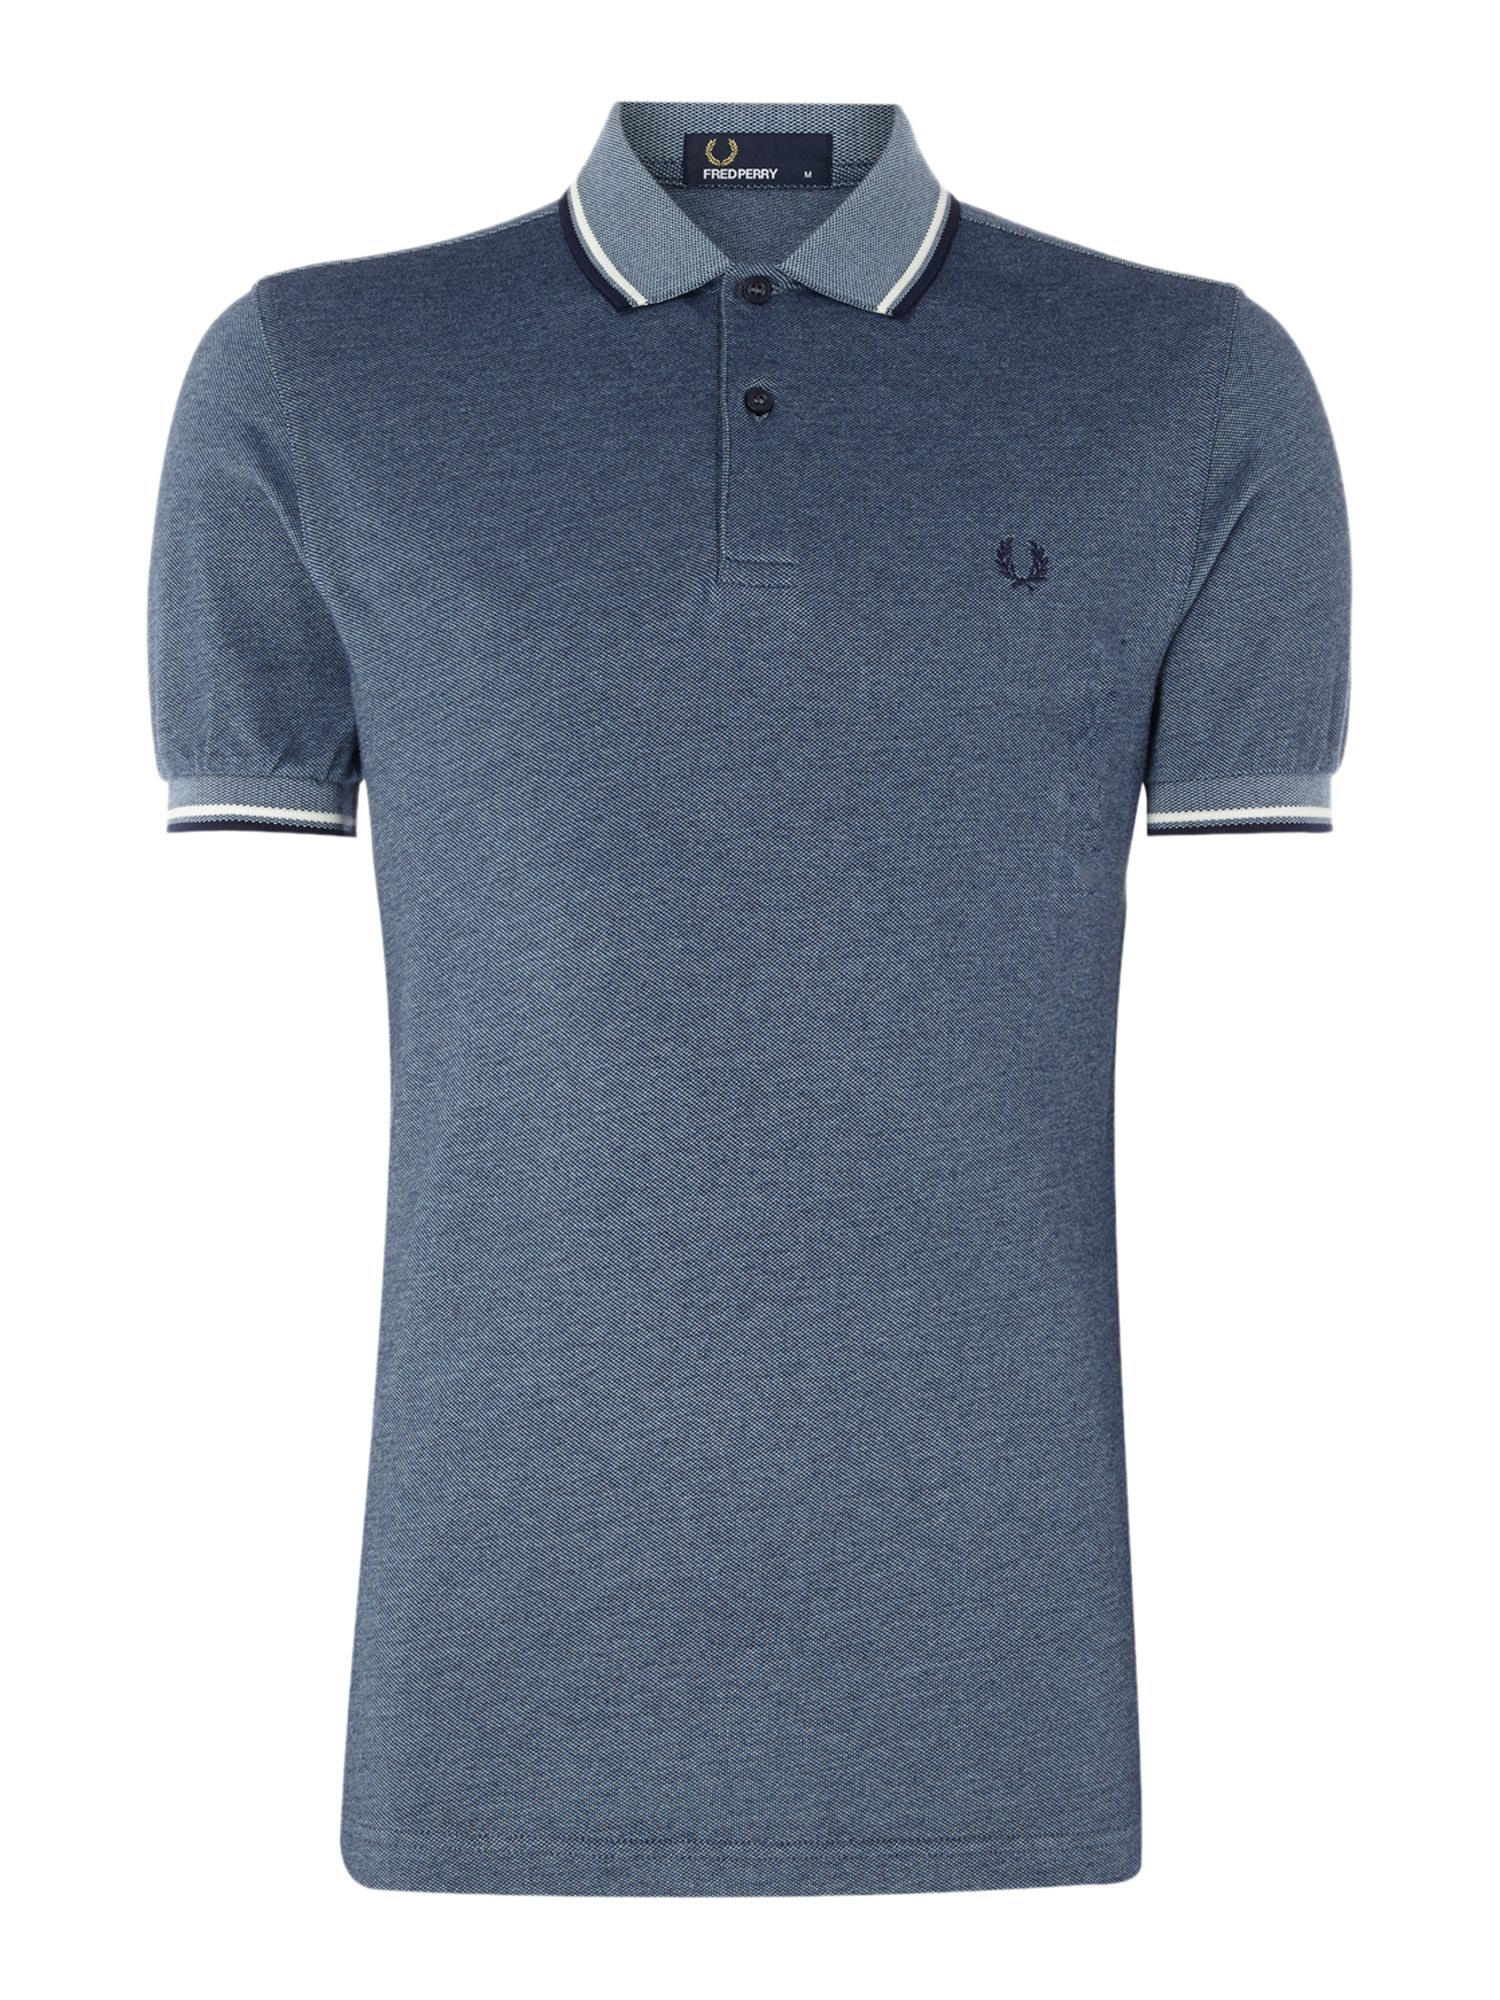 Mens Fred Perry Plain Twin Tipped Polo Shirt Blue Marl